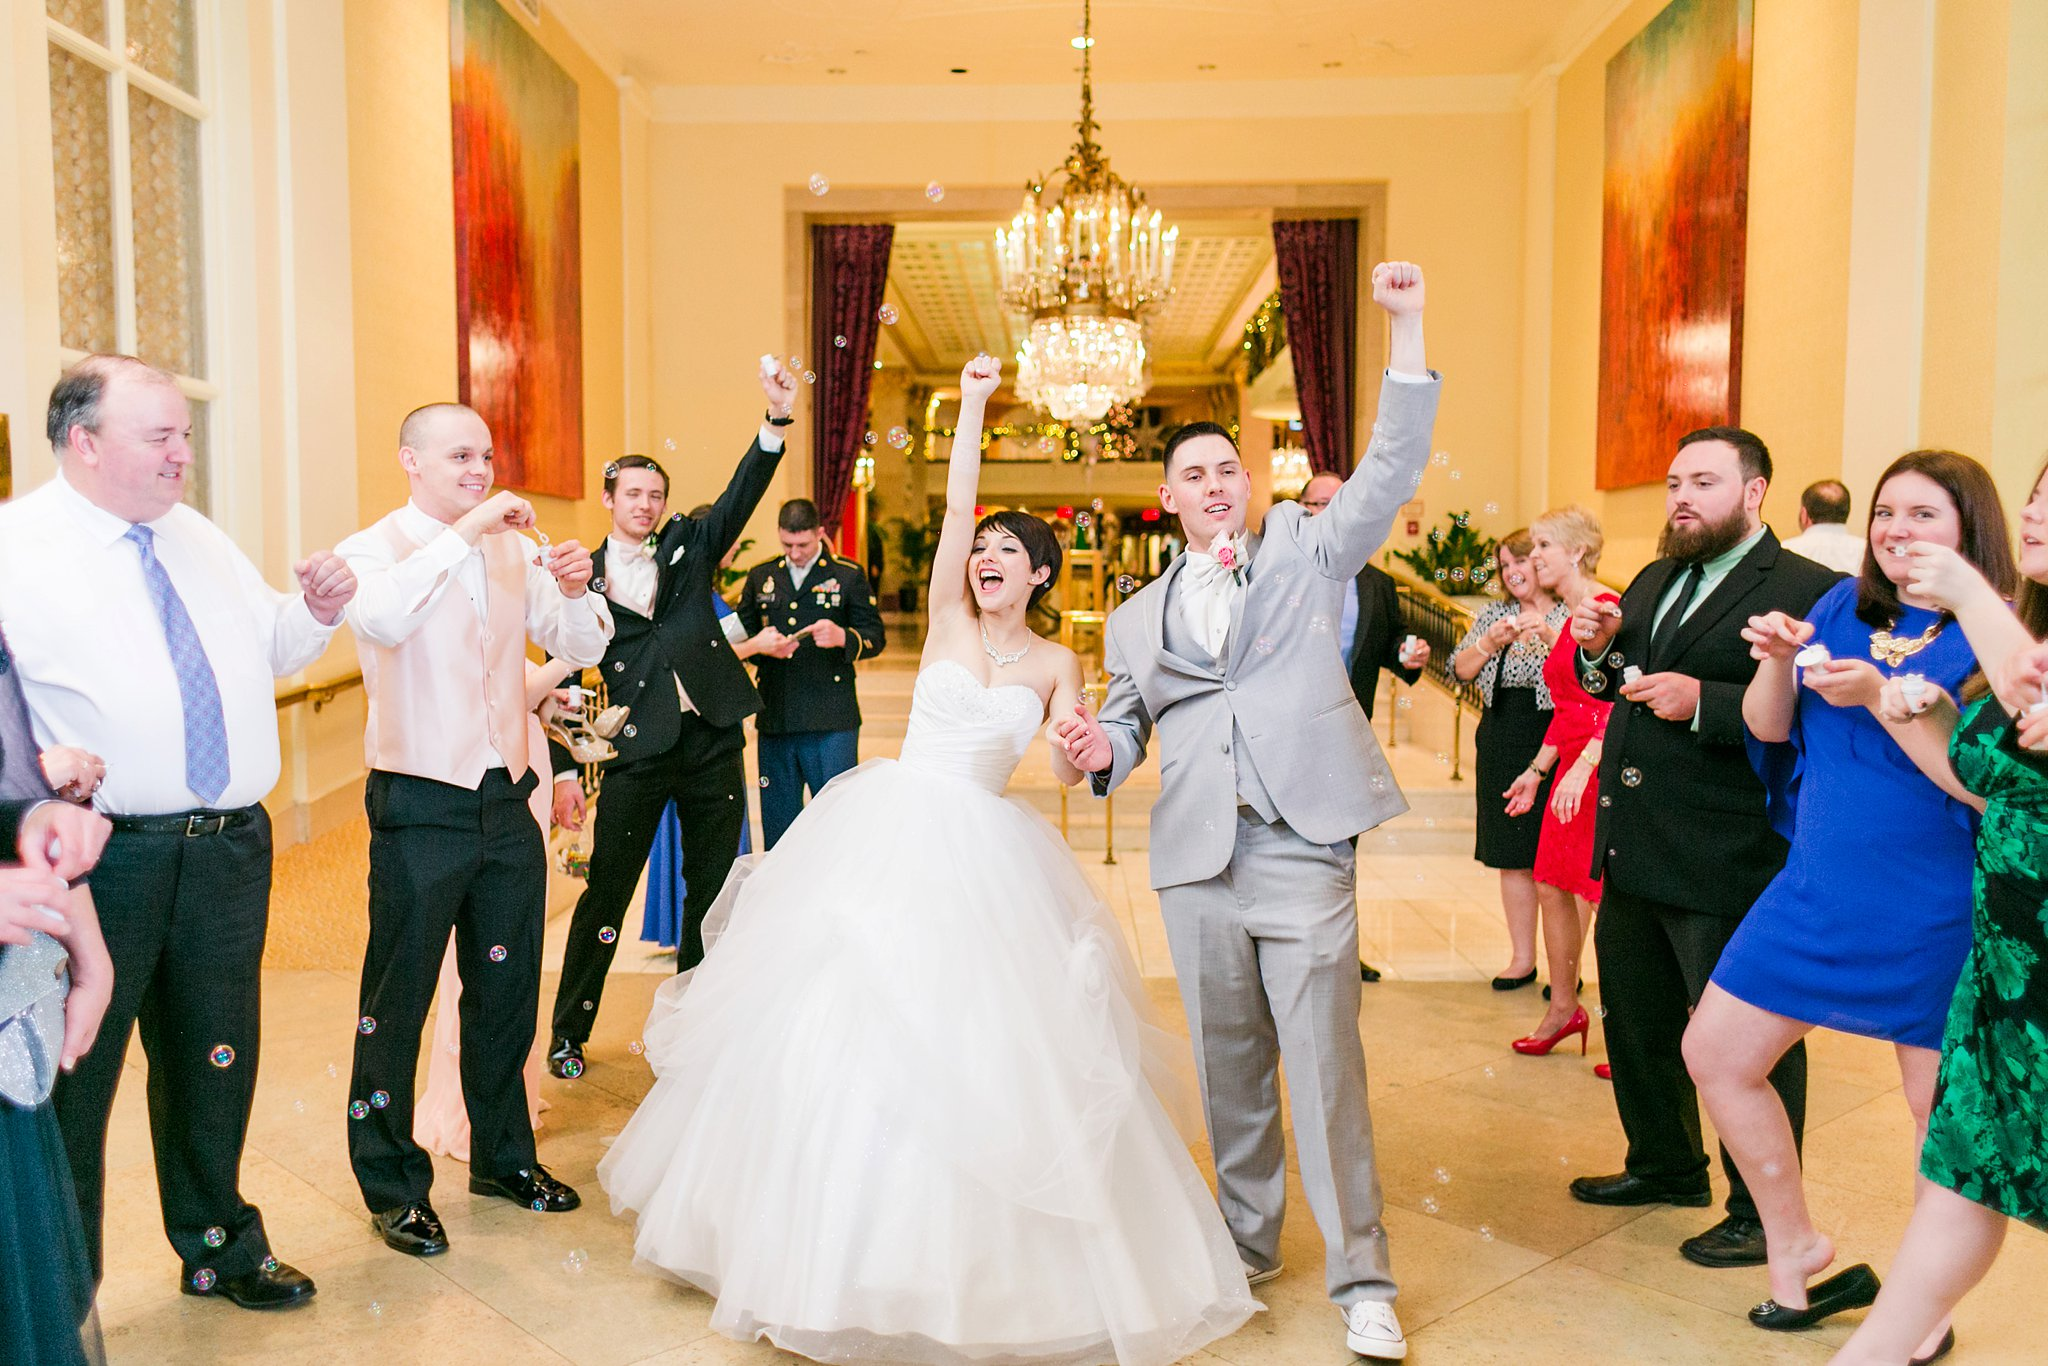 Mayflower Hotel Wedding Photos DC Pink & Gold Winter Wedding Tori & Tyler-661_photo.jpg